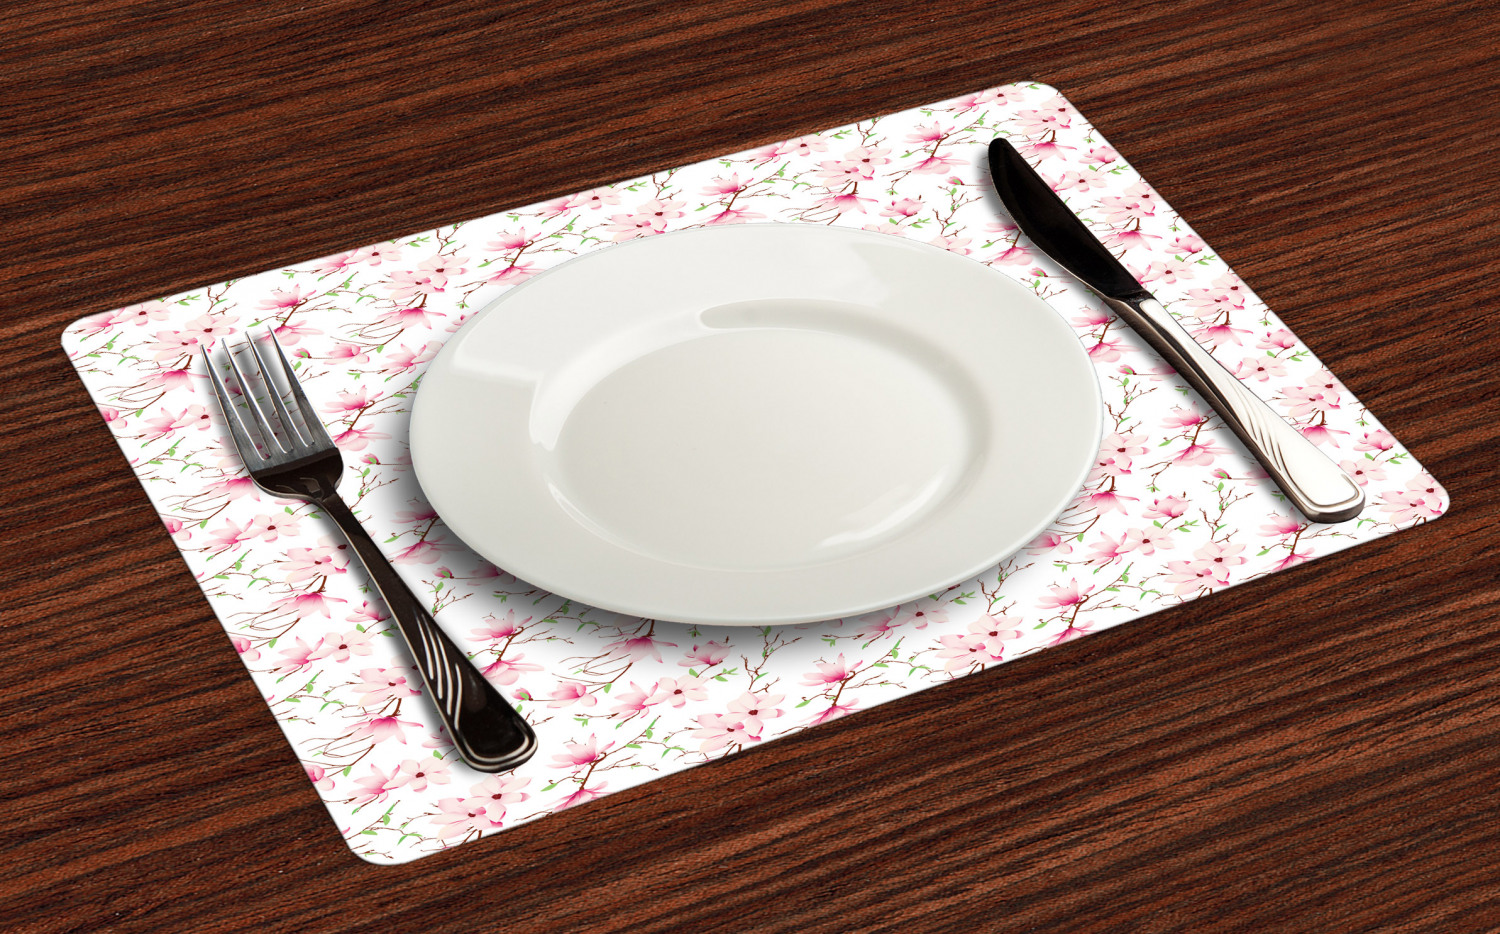 Ambesonne-Flower-Pattern-Placemat-Set-of-4-Fabric-Place-Mats-for-Table-Decor thumbnail 9